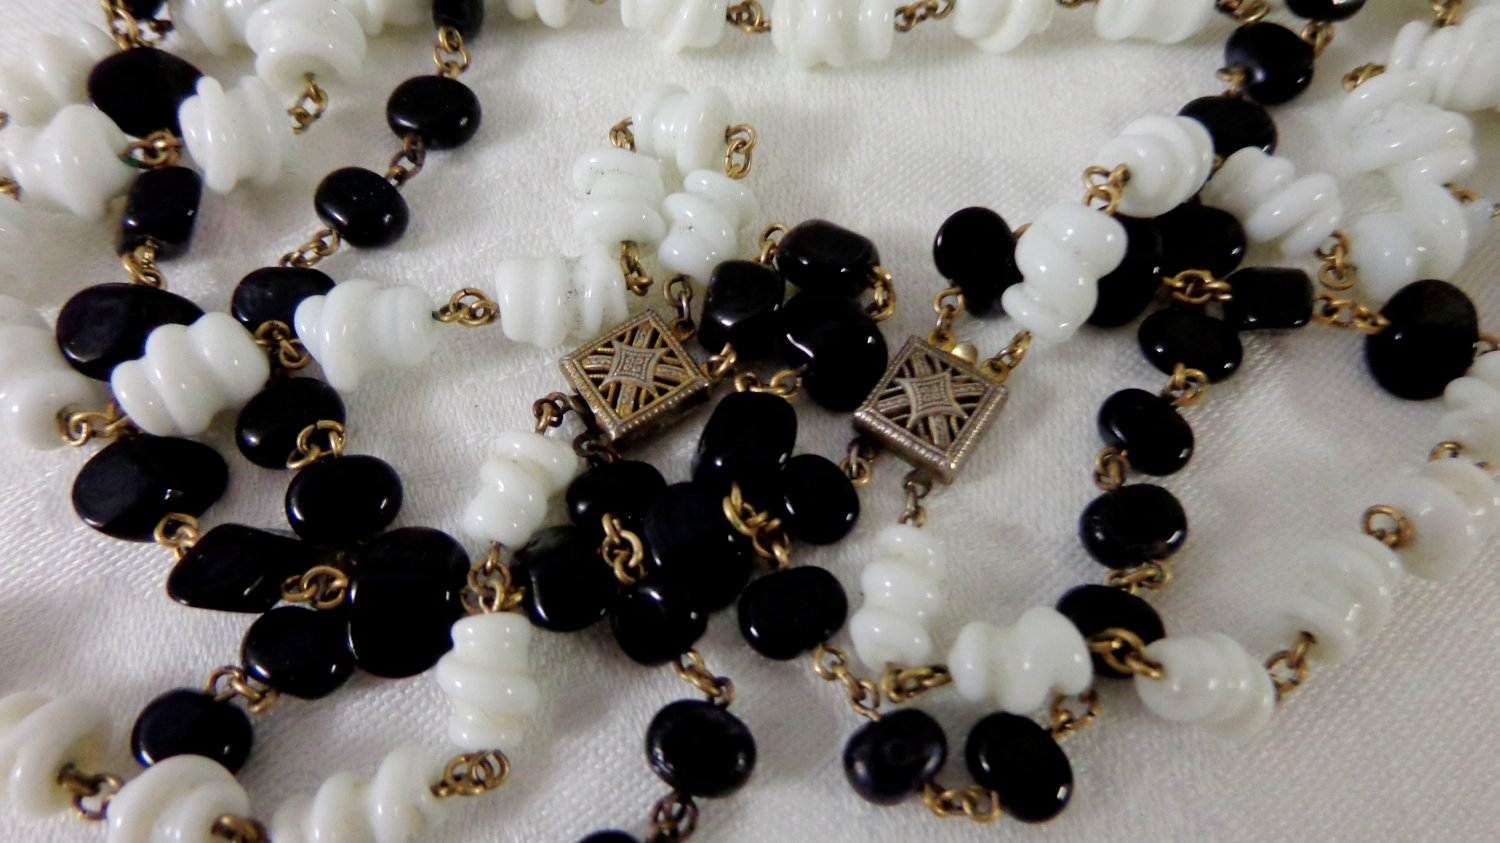 2 Black and white double strand necklaces glass beads sterling clasps Art Deco vintage ll3366